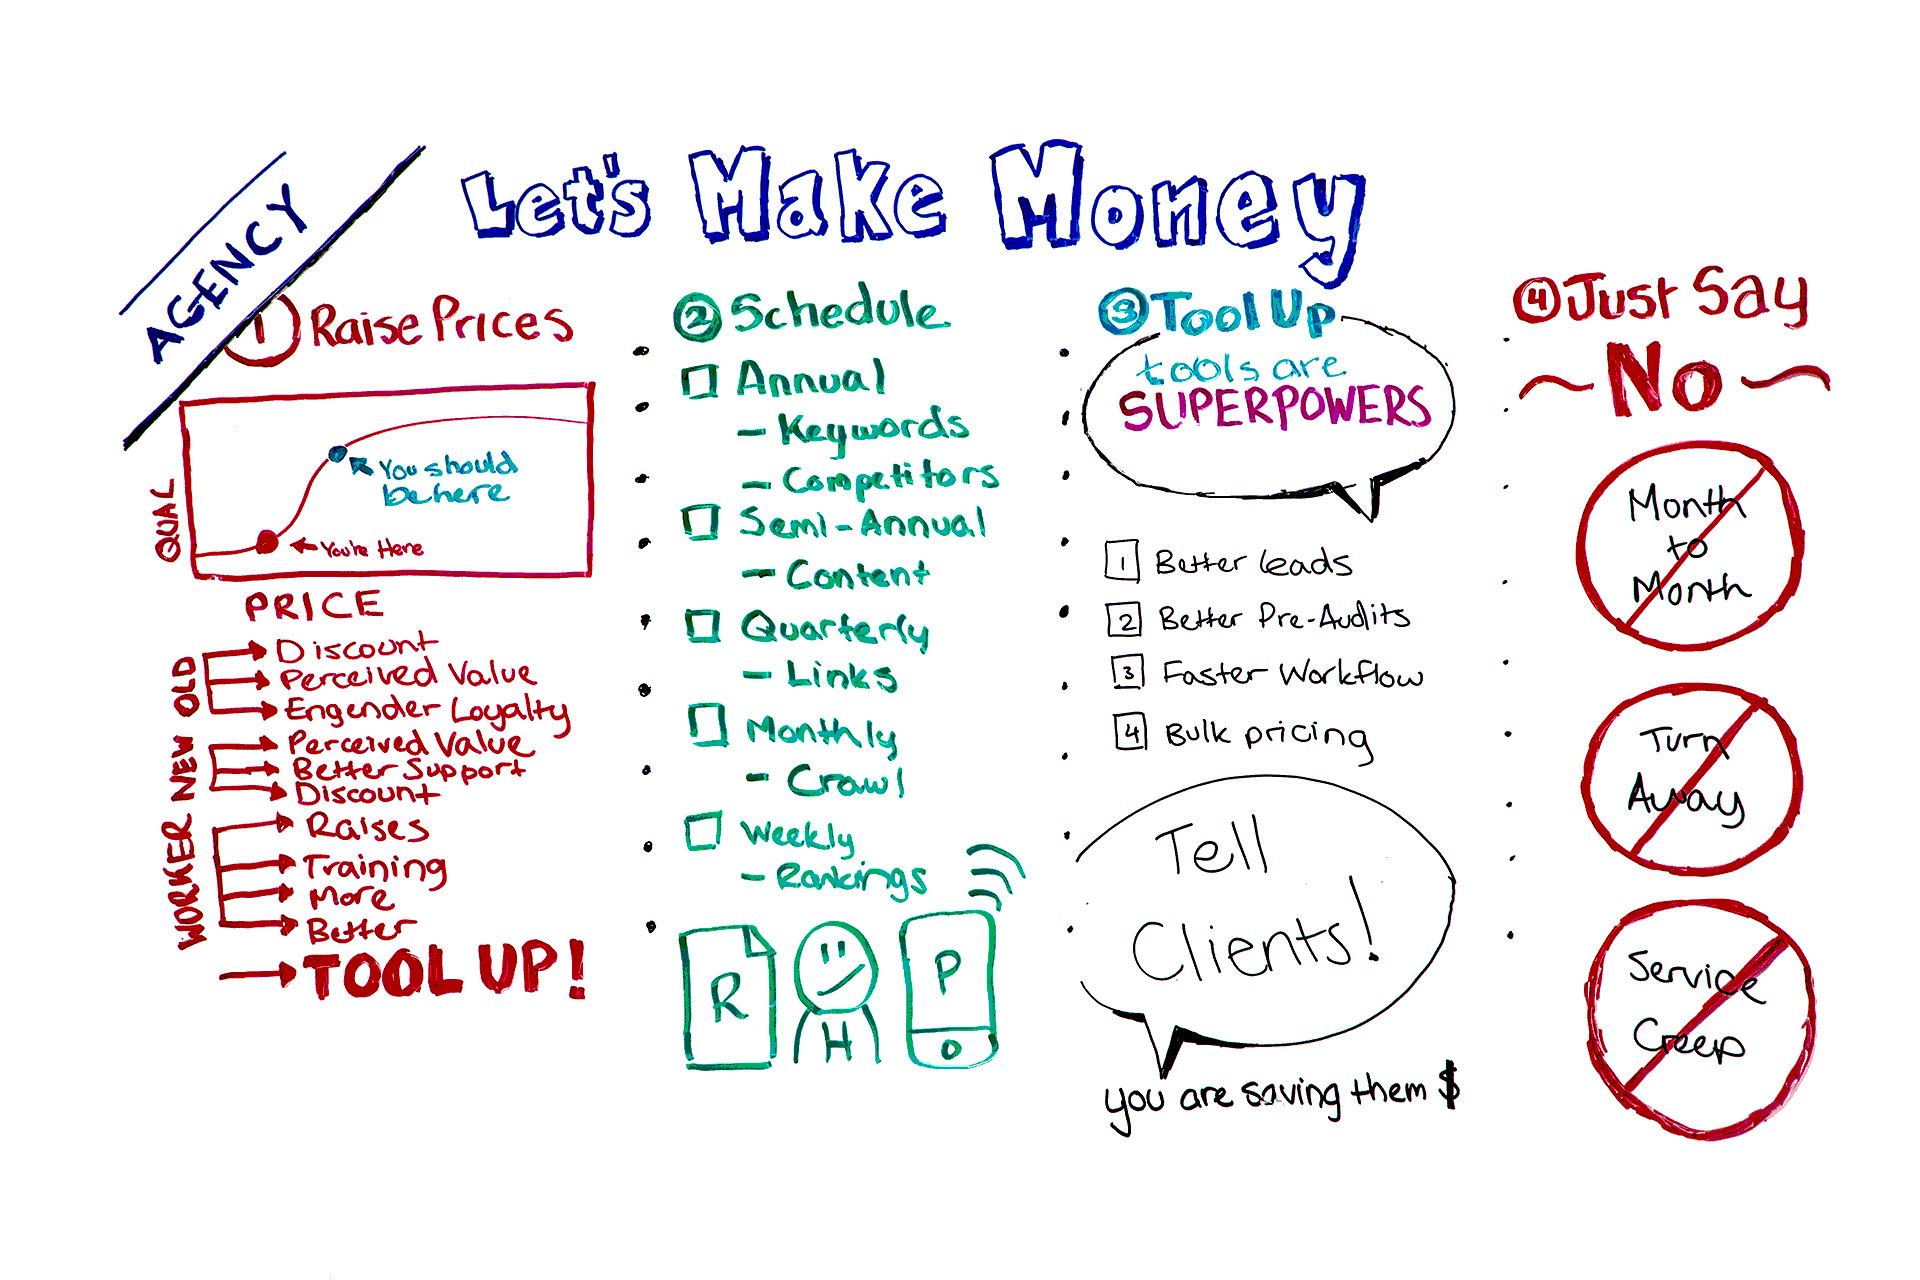 Let's Make Money: 4 Tactics for Agencies Looking to Succeed – Whiteboard Friday